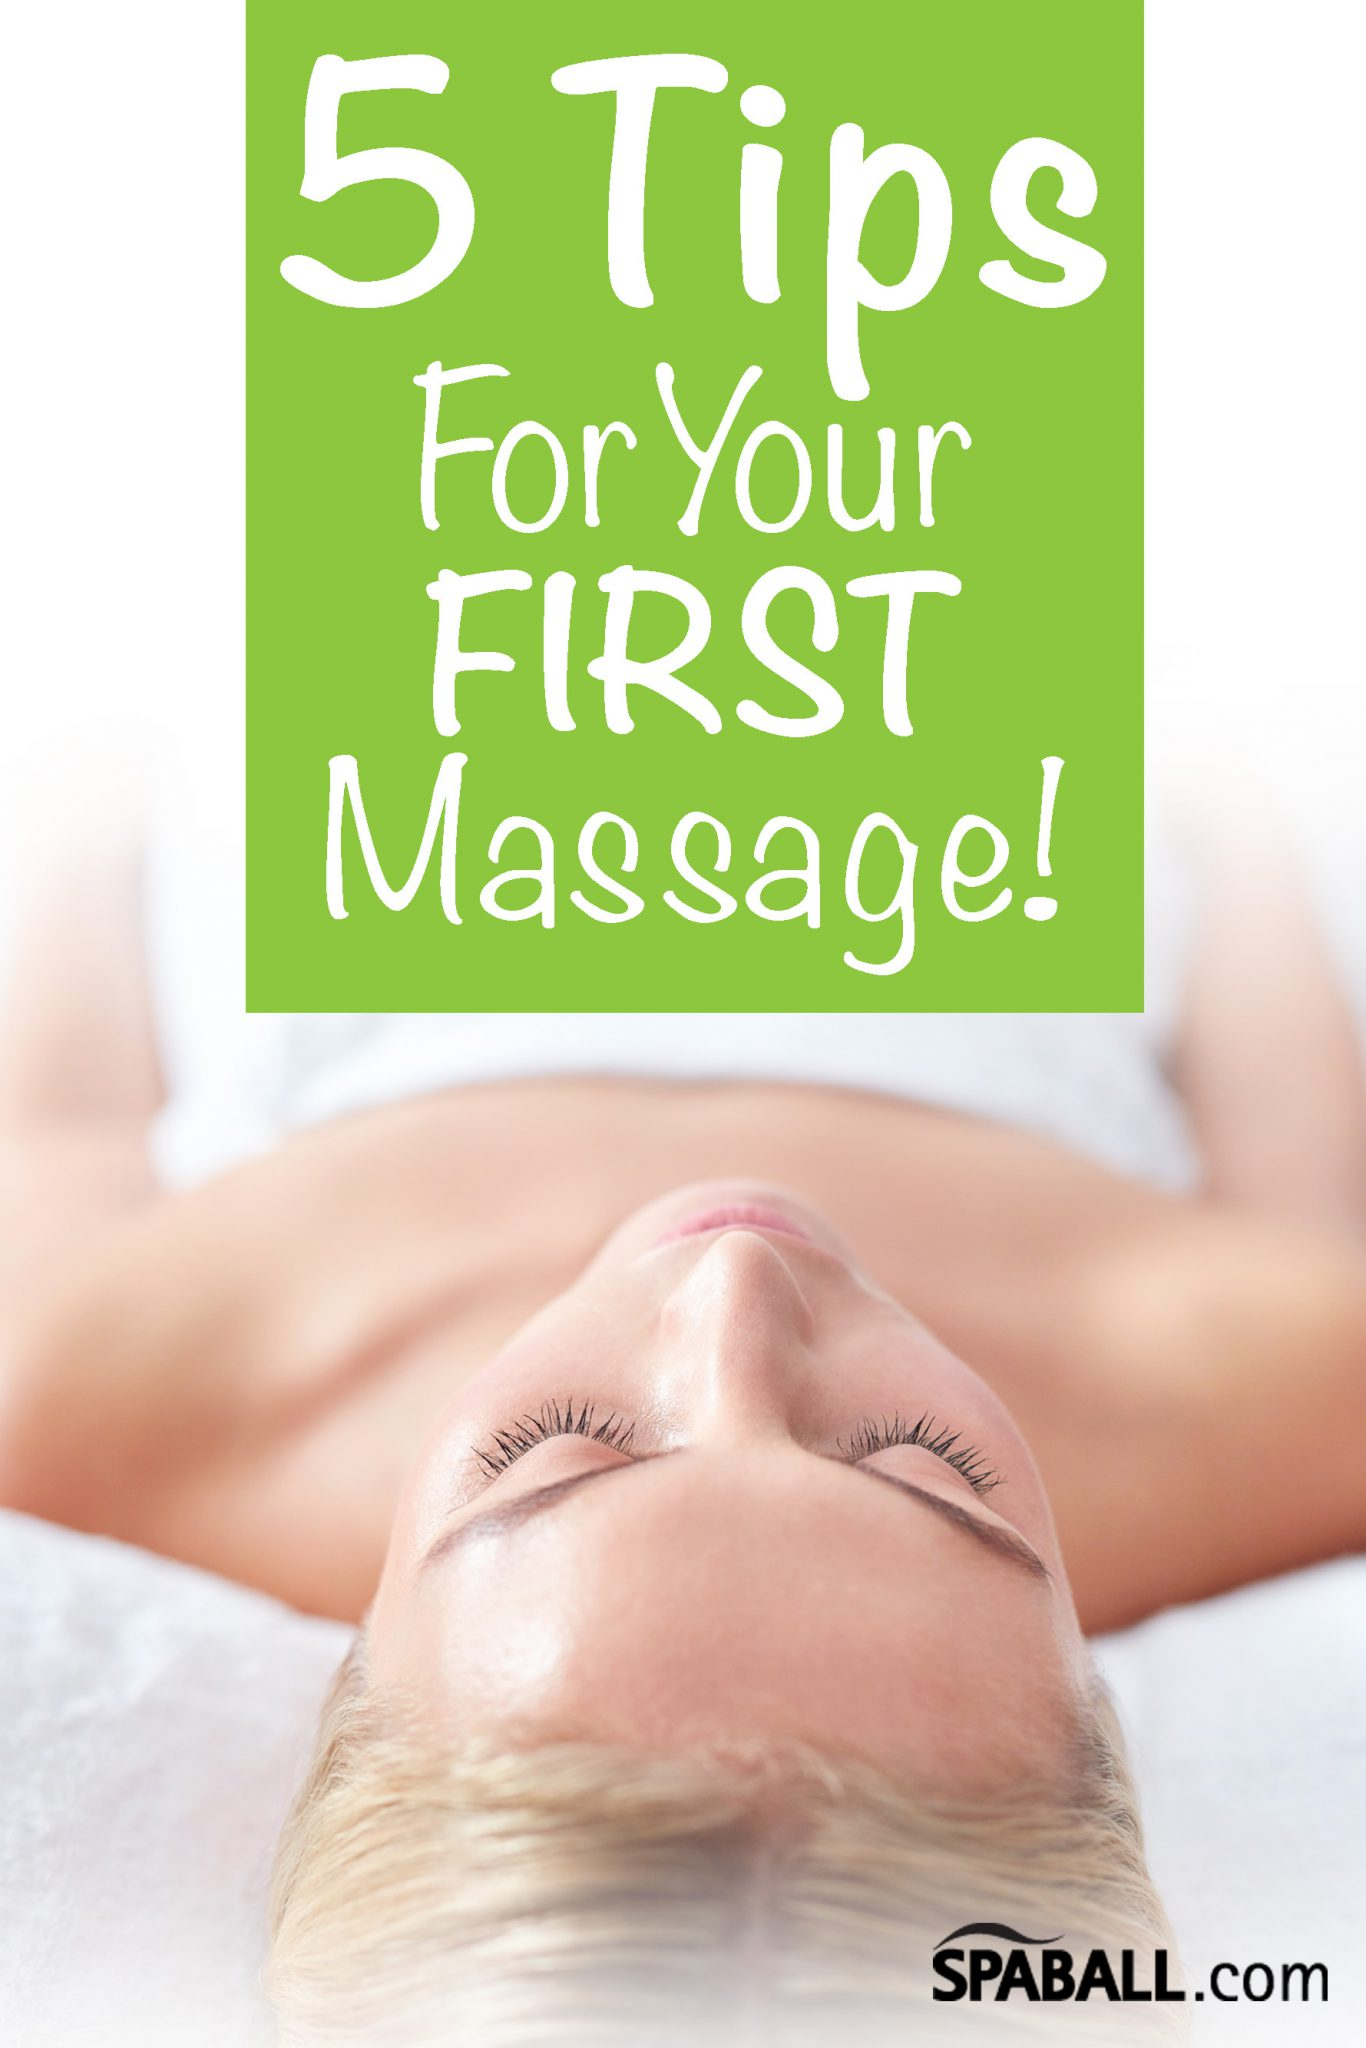 5 Tips For Your FIRST Massage!